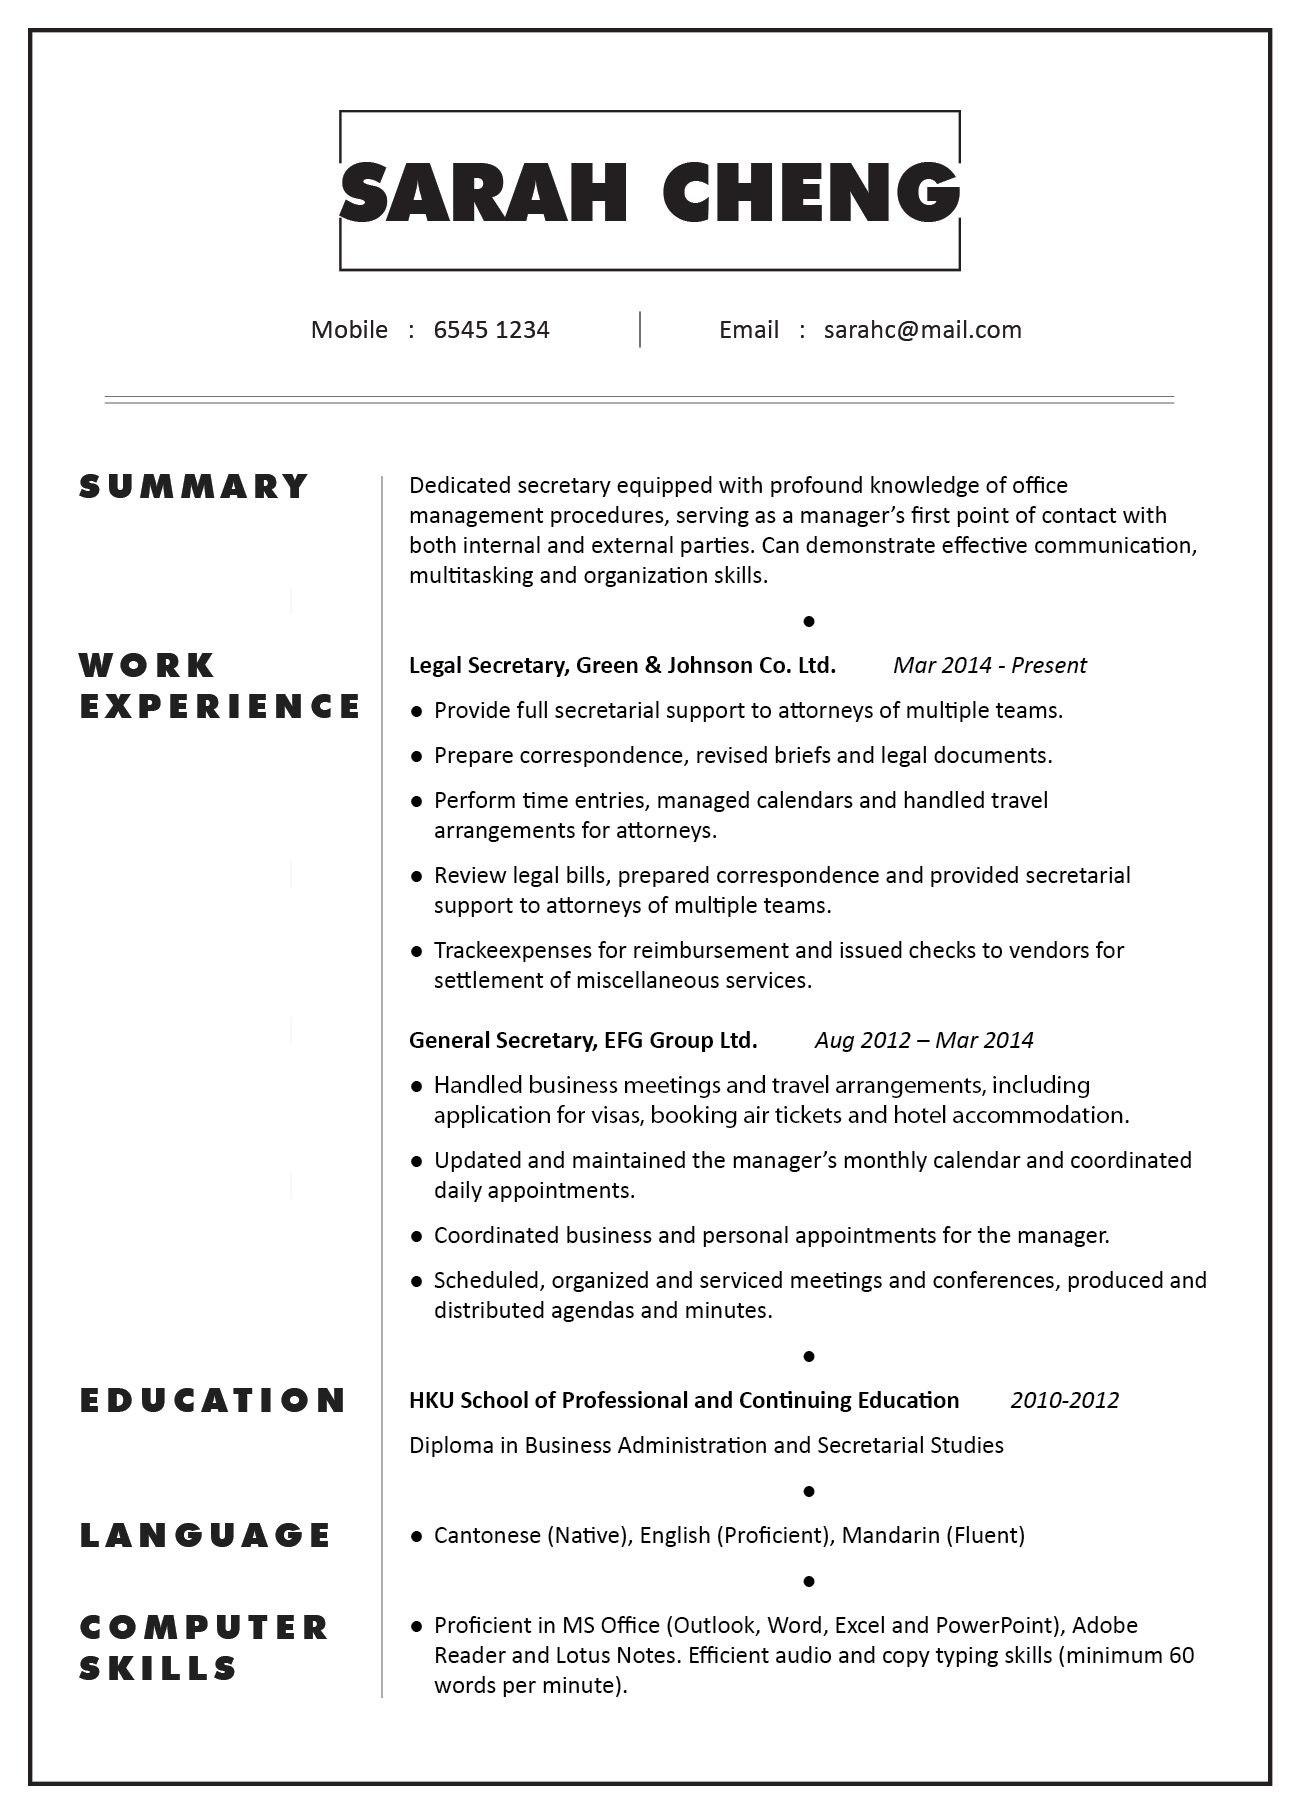 cv profile sample secretary jobsdb hong kong job description of for resume mission Resume Job Description Of A Secretary For Resume